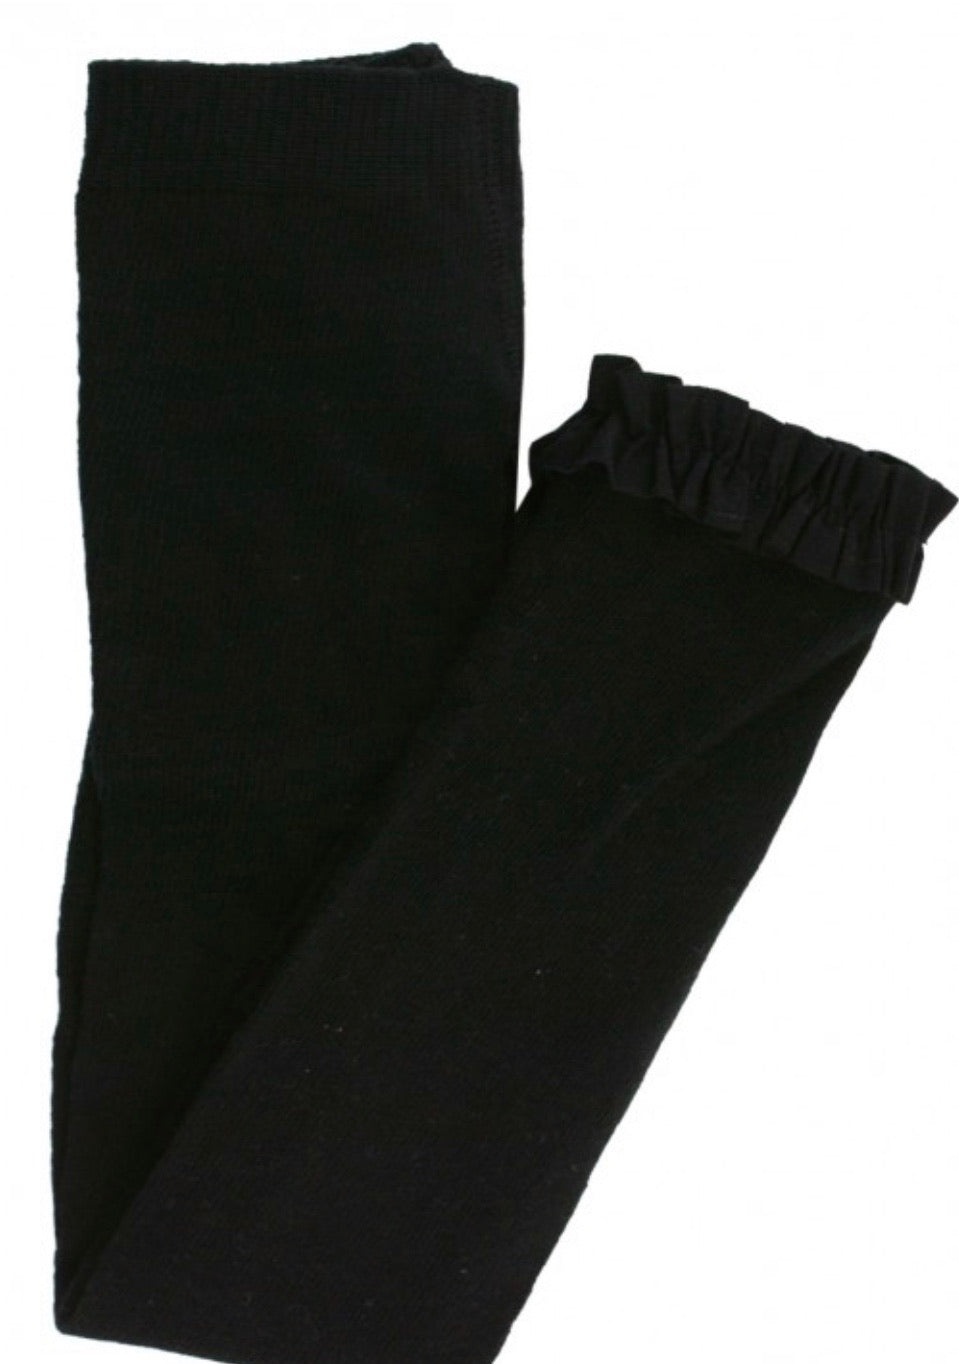 Black Footless Ruffle Tights